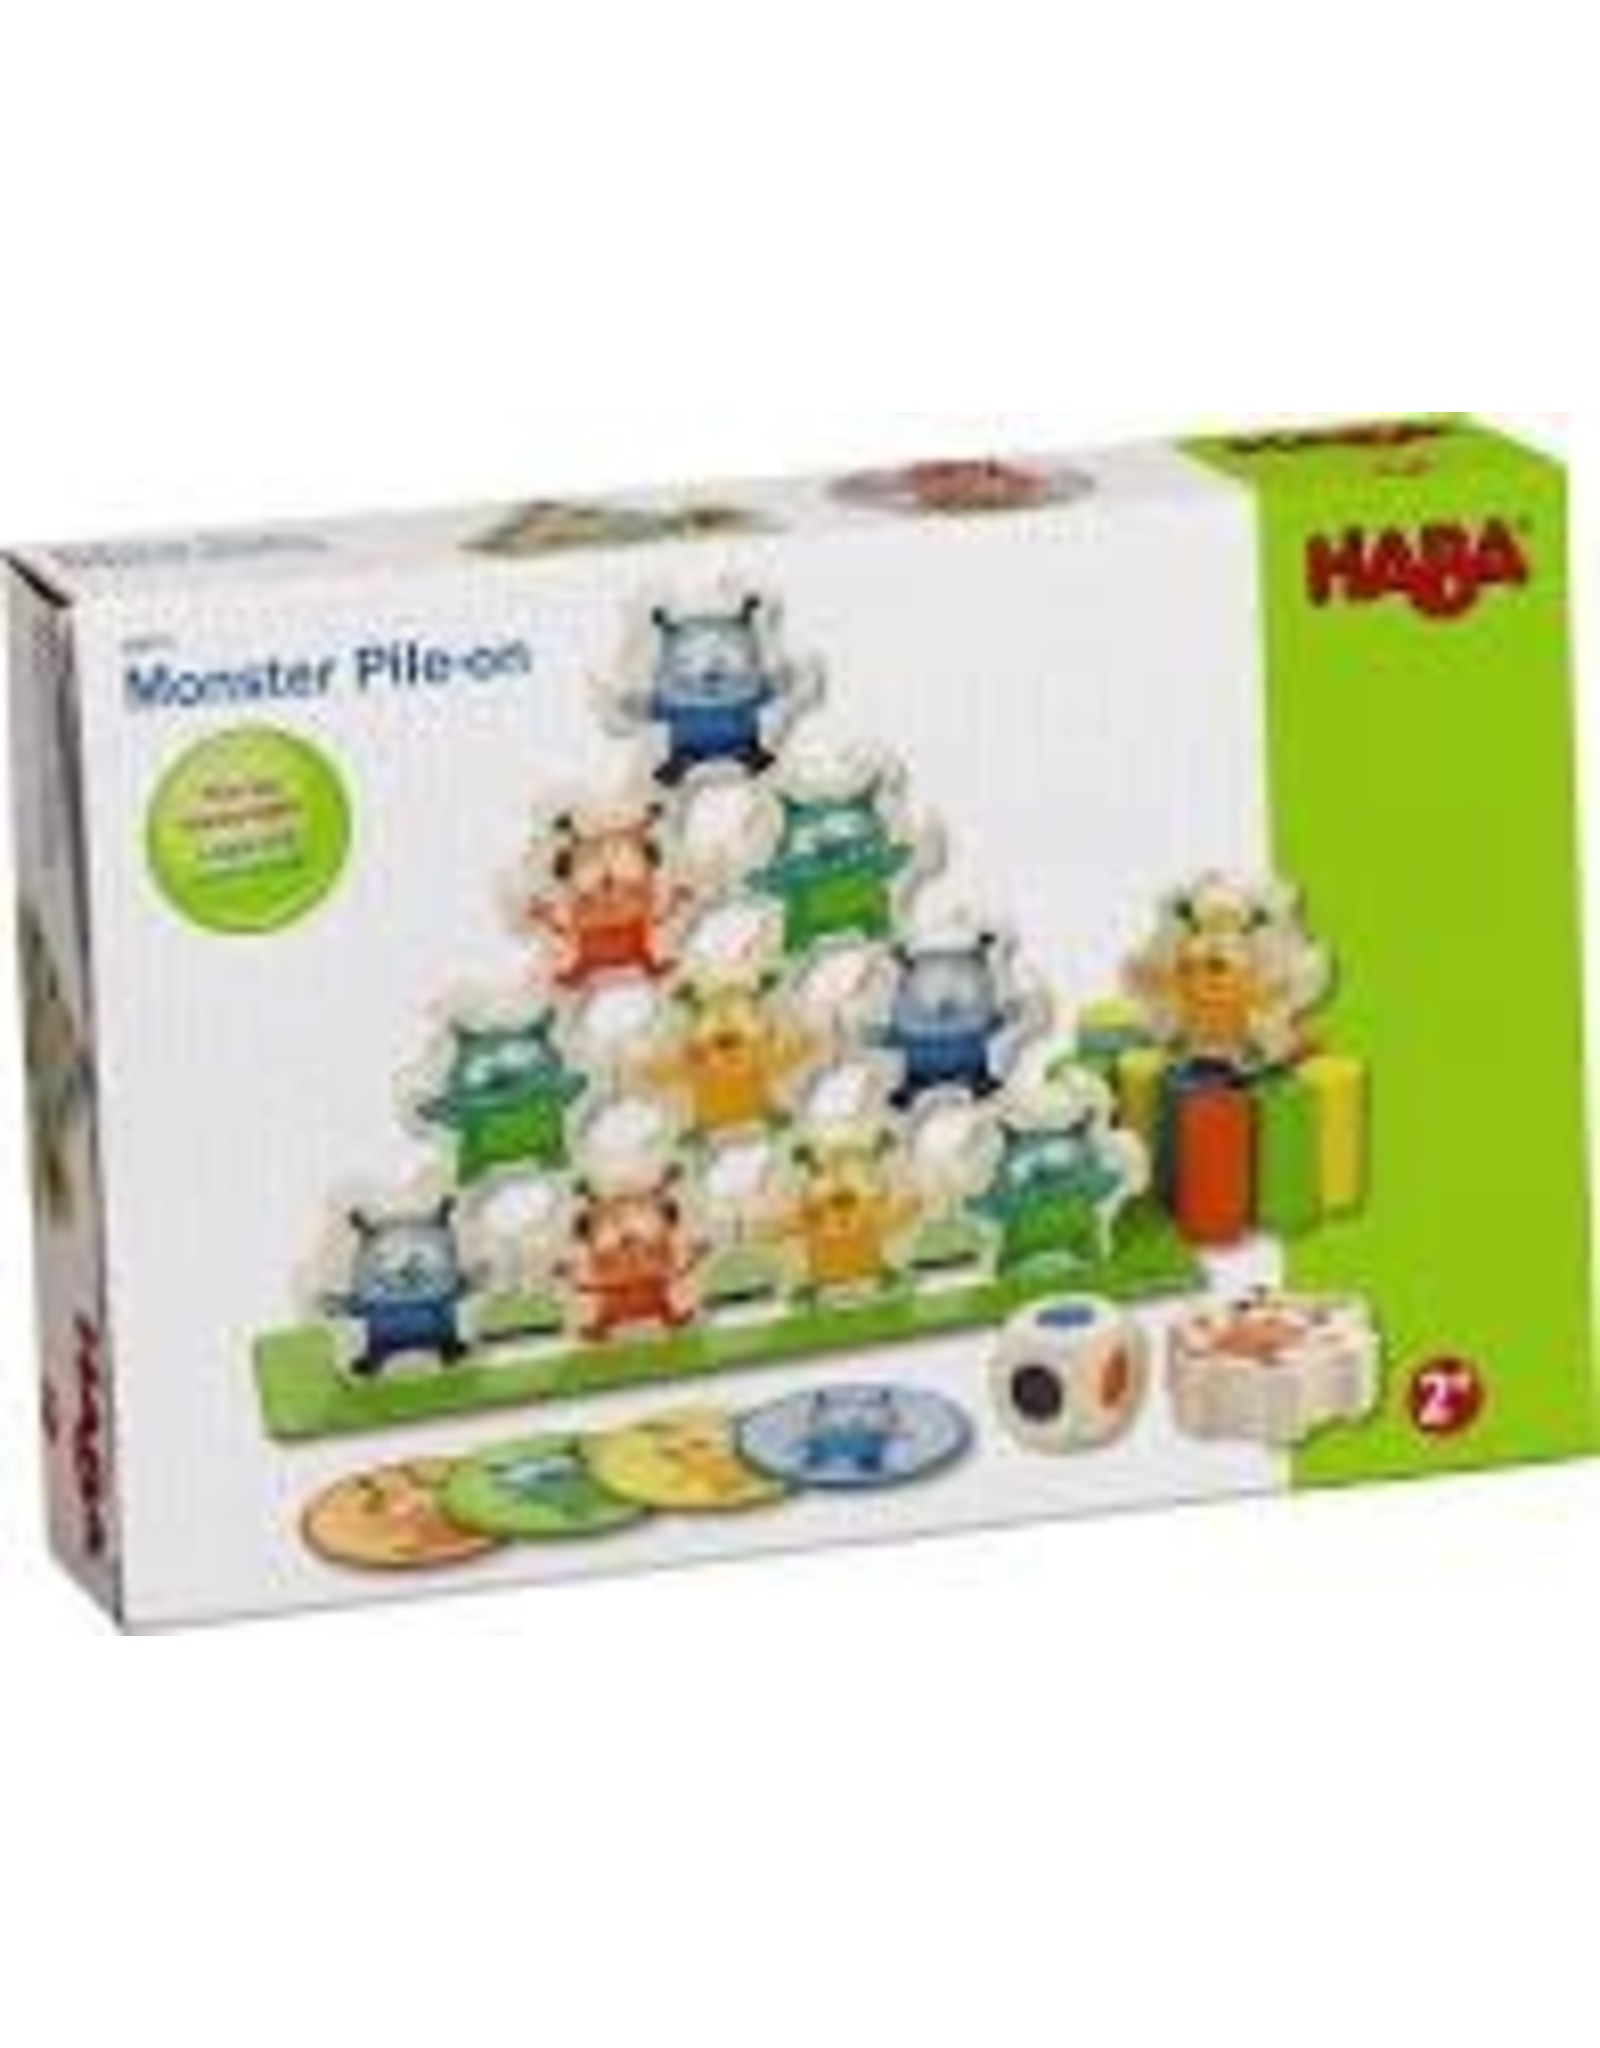 Haba Monster Pile On